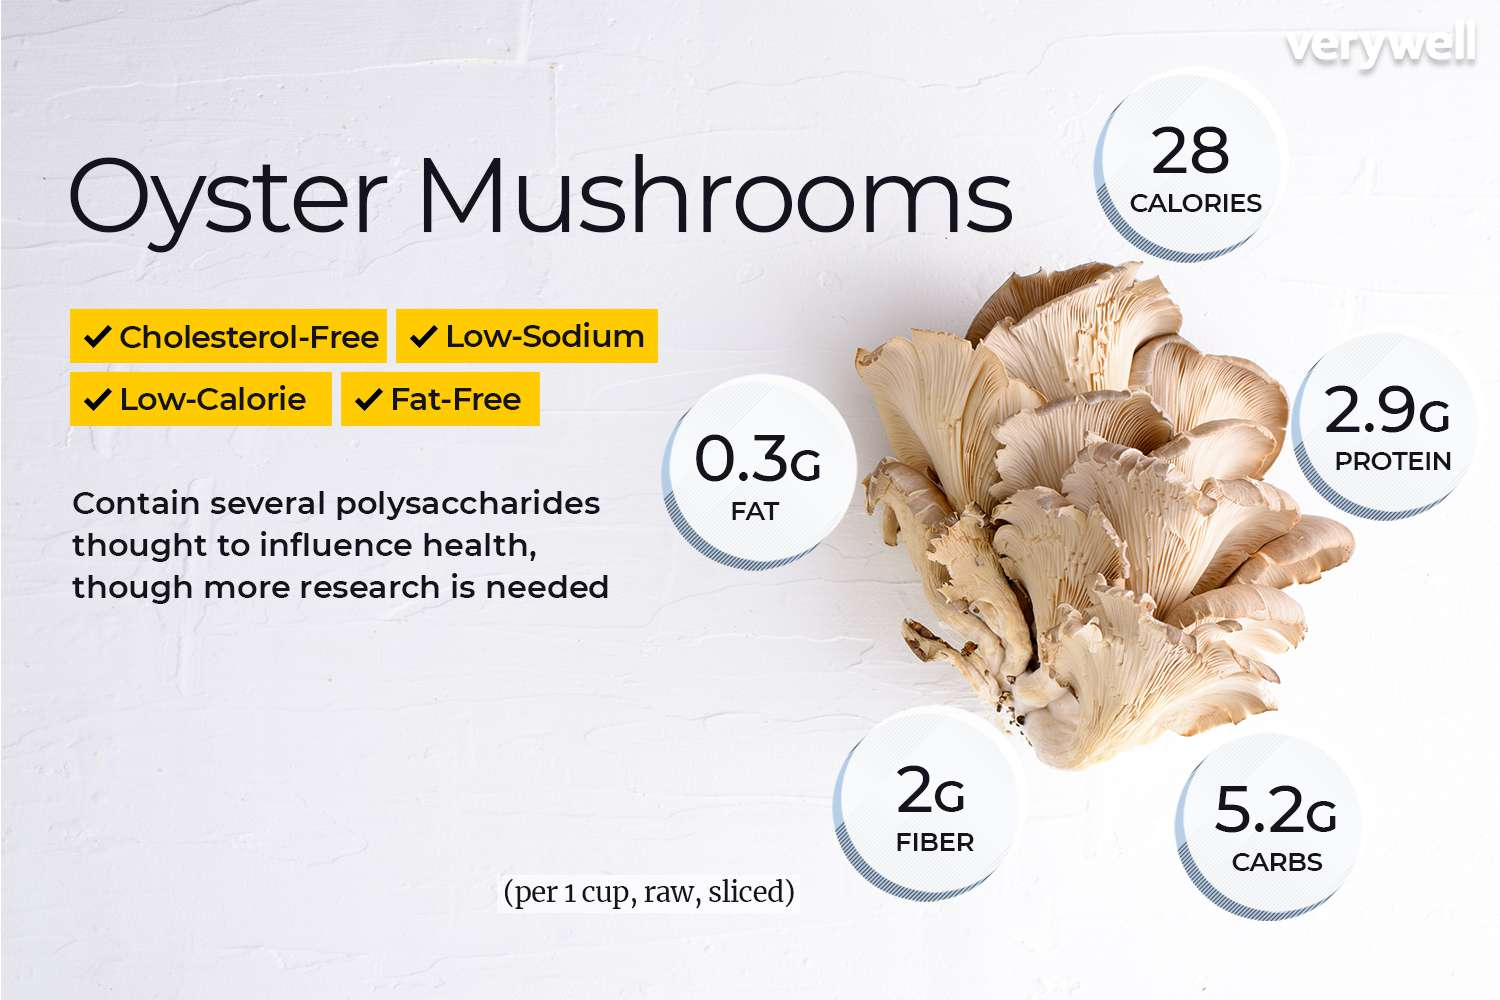 The Health Benefits of Oyster Mushrooms